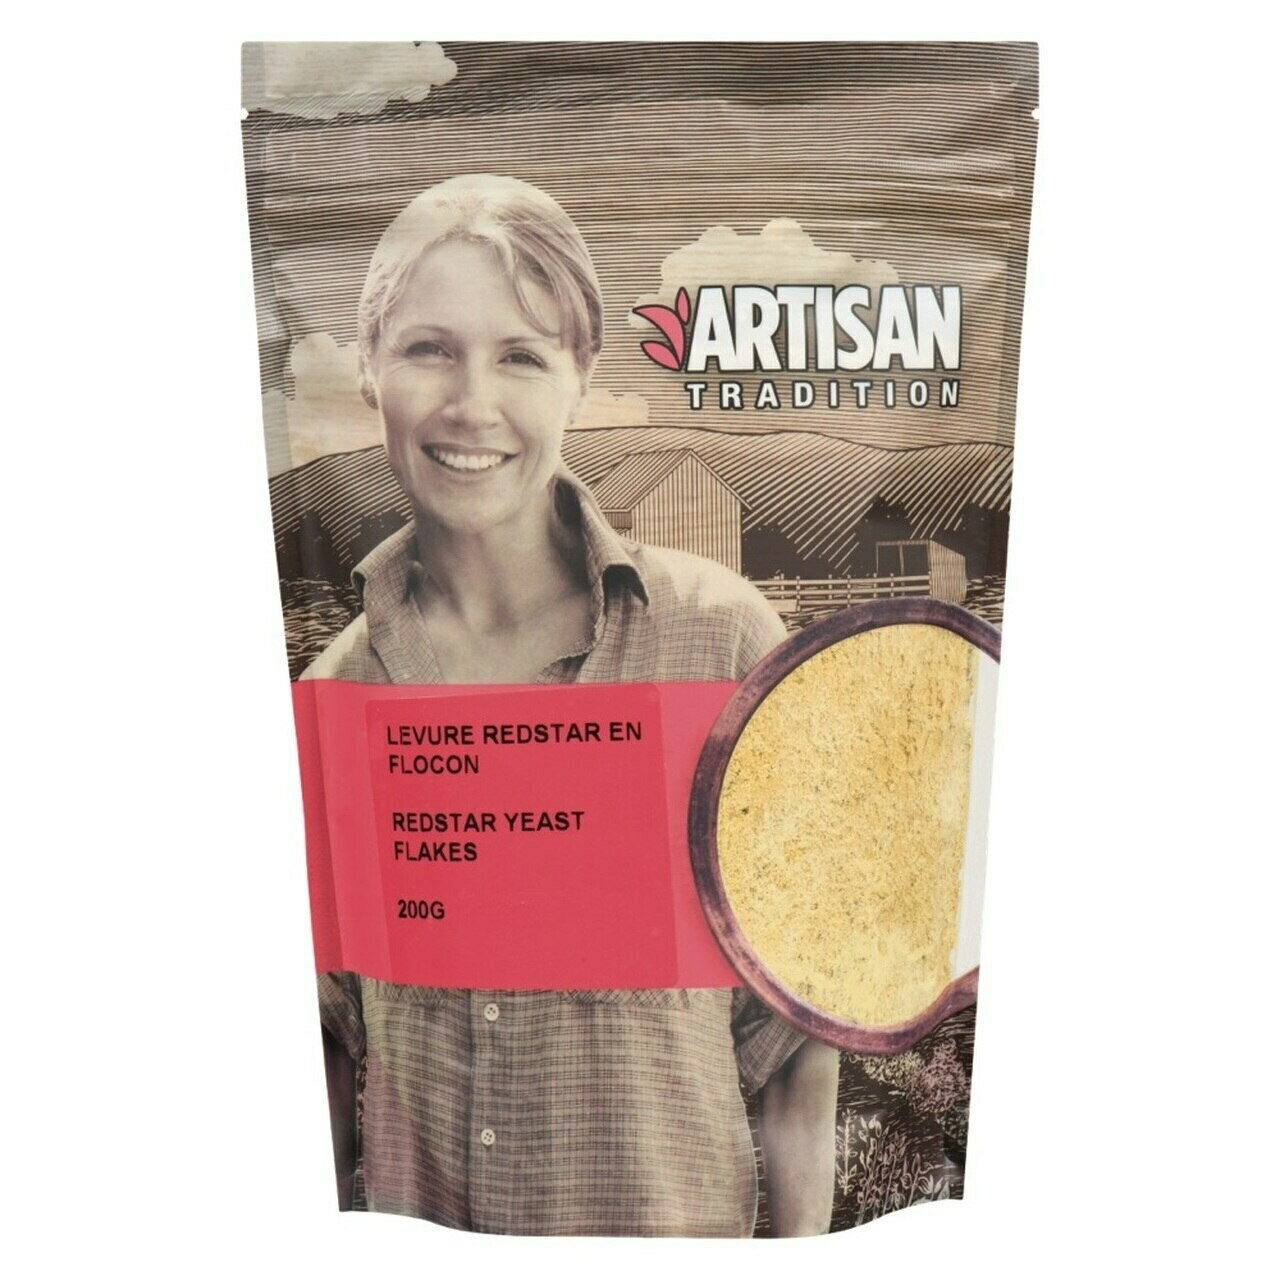 ARTISAN TRADITIONAL Yeast Flakes